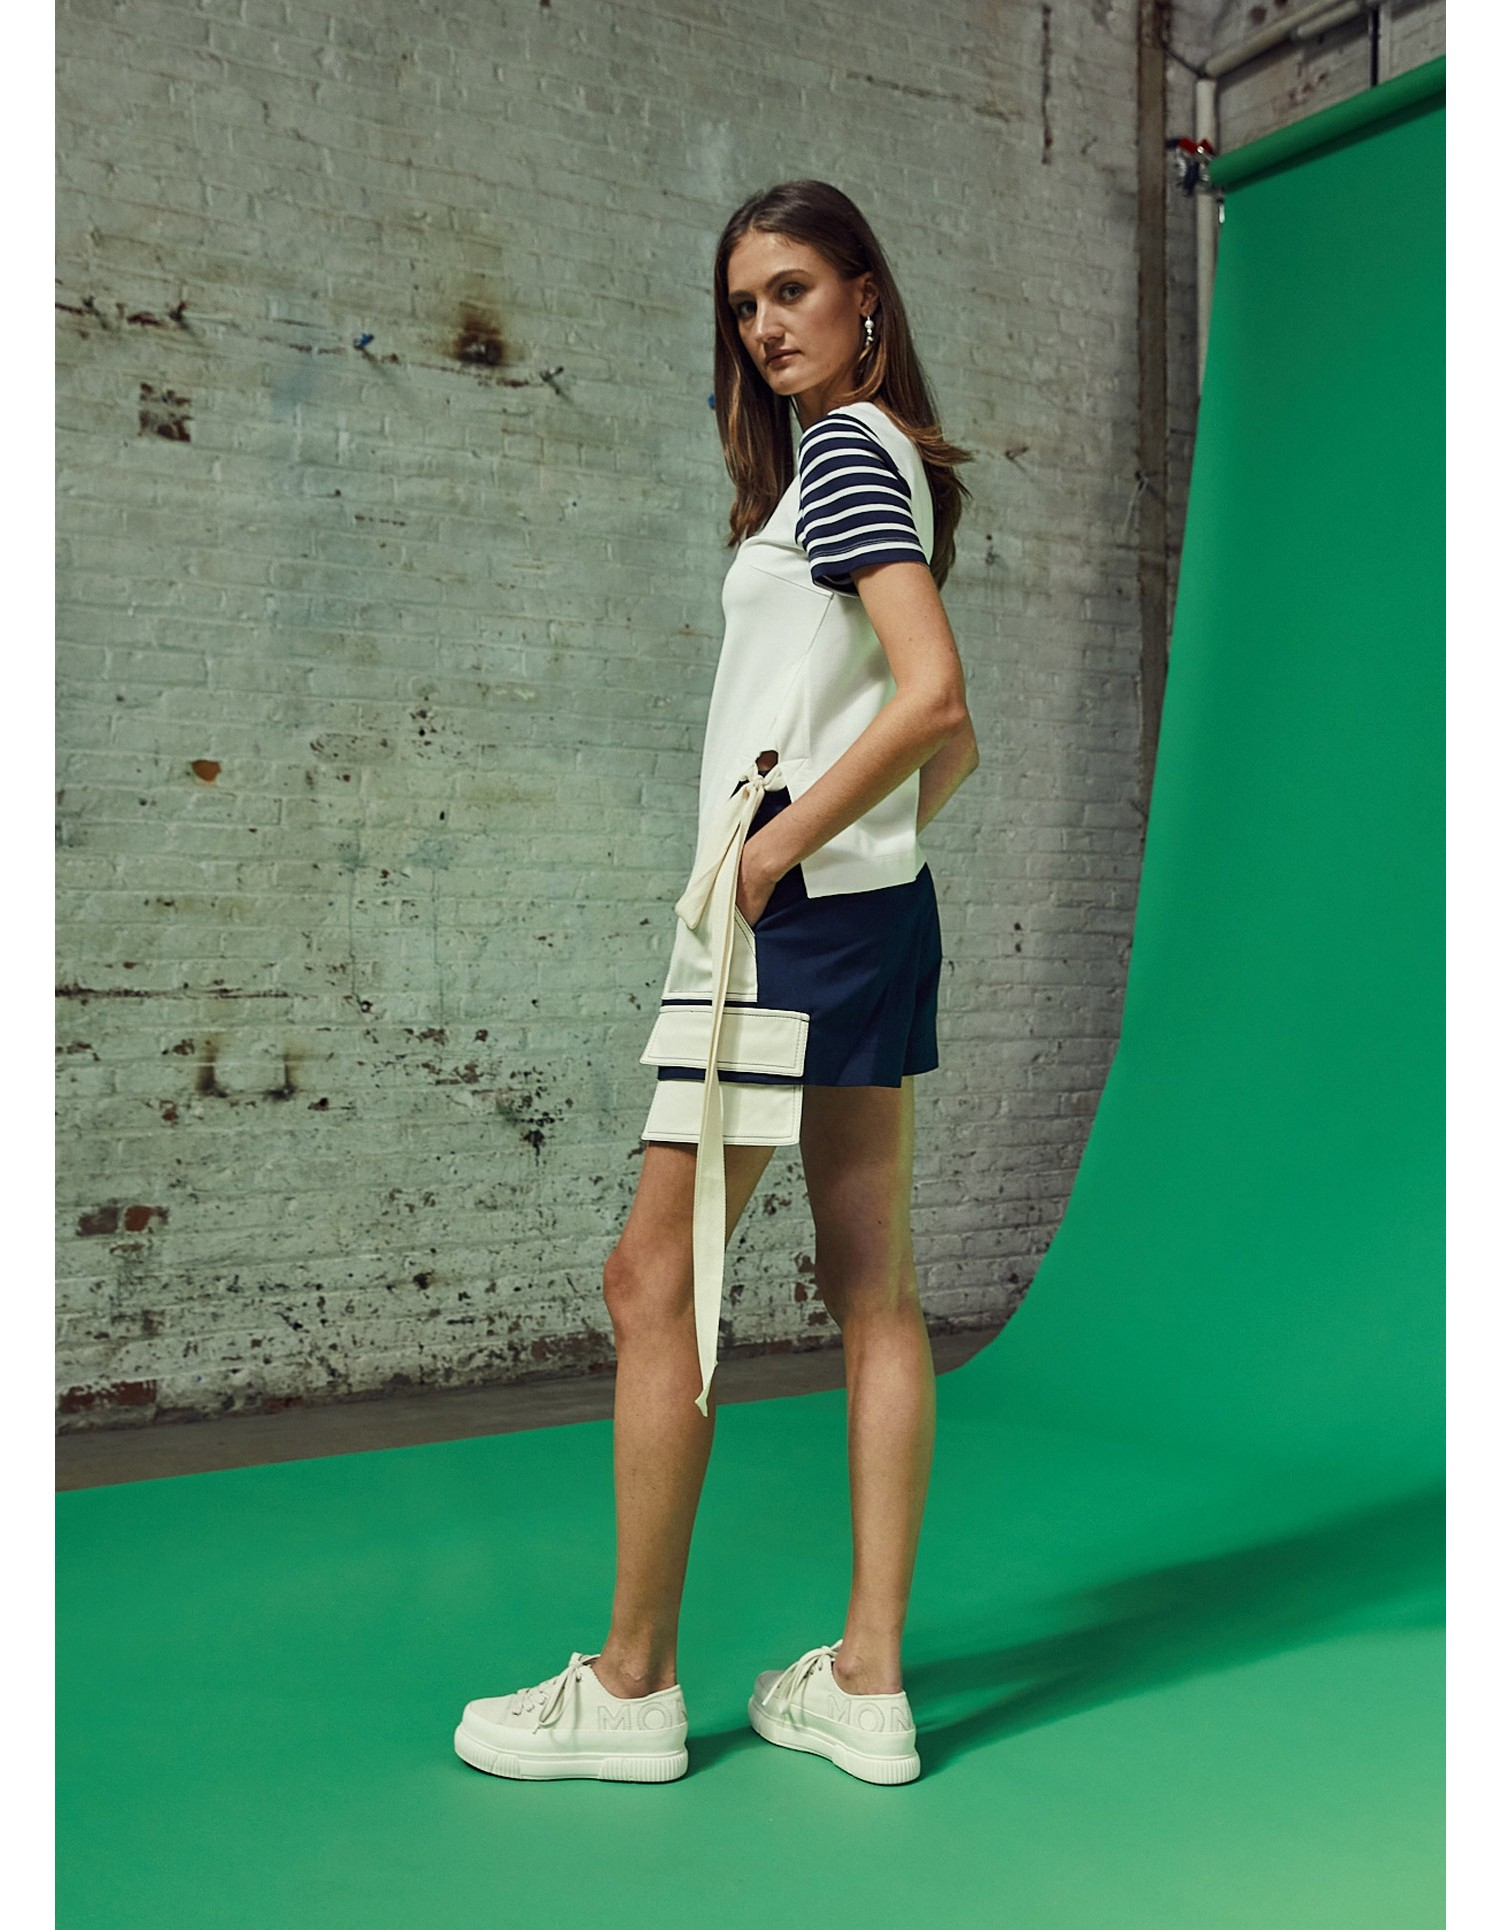 MONSE Extended Patch Pocket Shorts in Midnight and Ivory on Model Side View